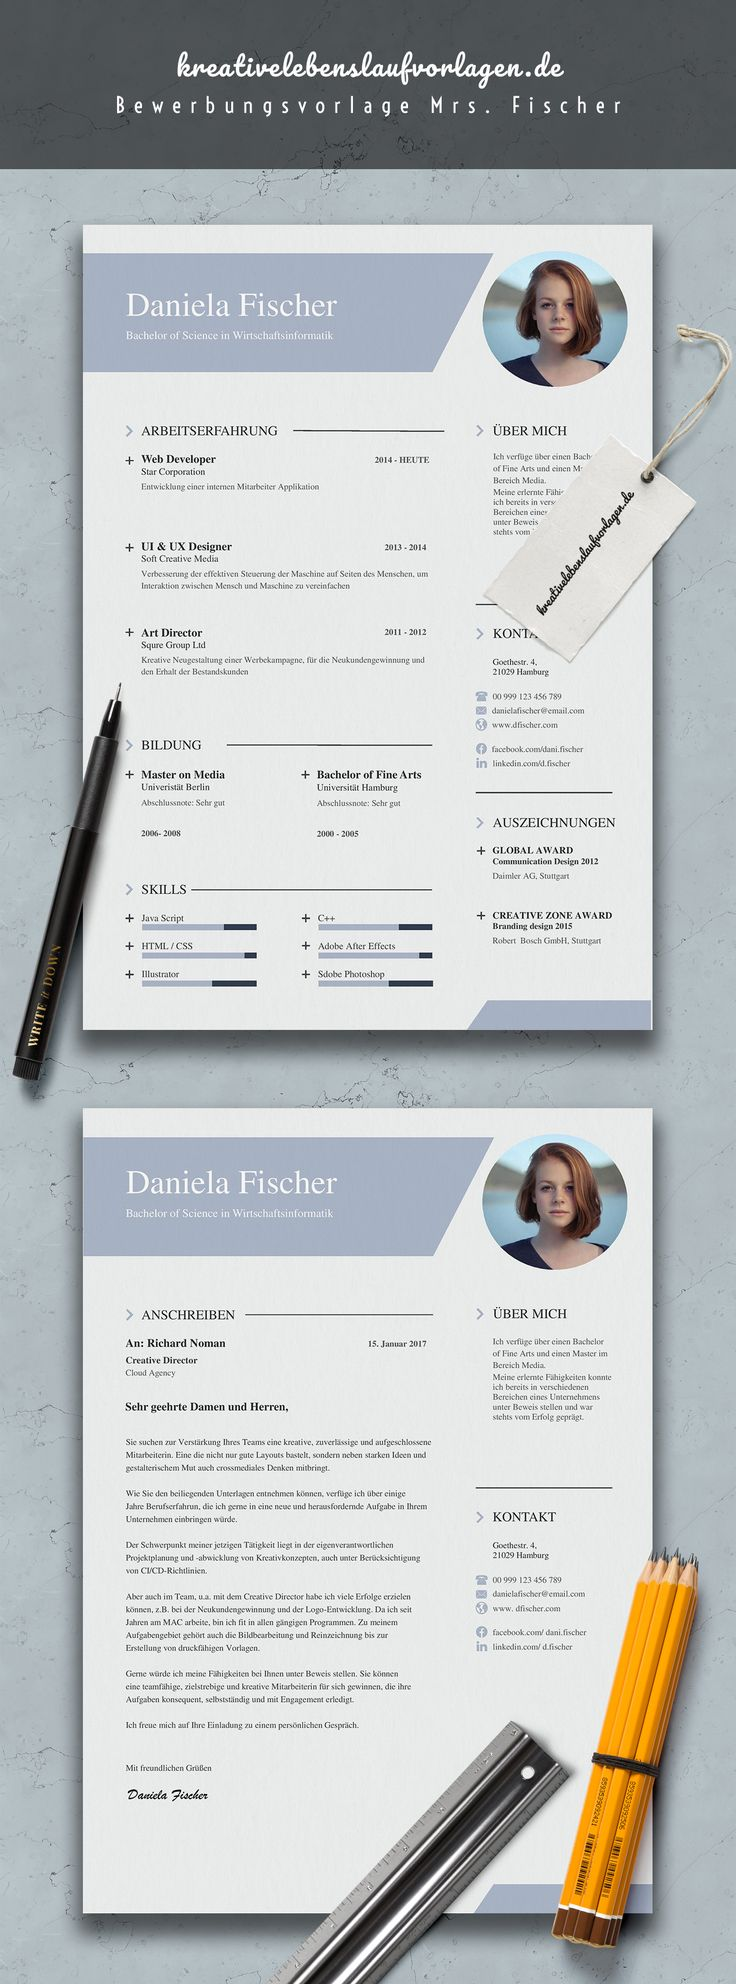 16 best CV images on Pinterest | Curriculum, Resume and Resume cv